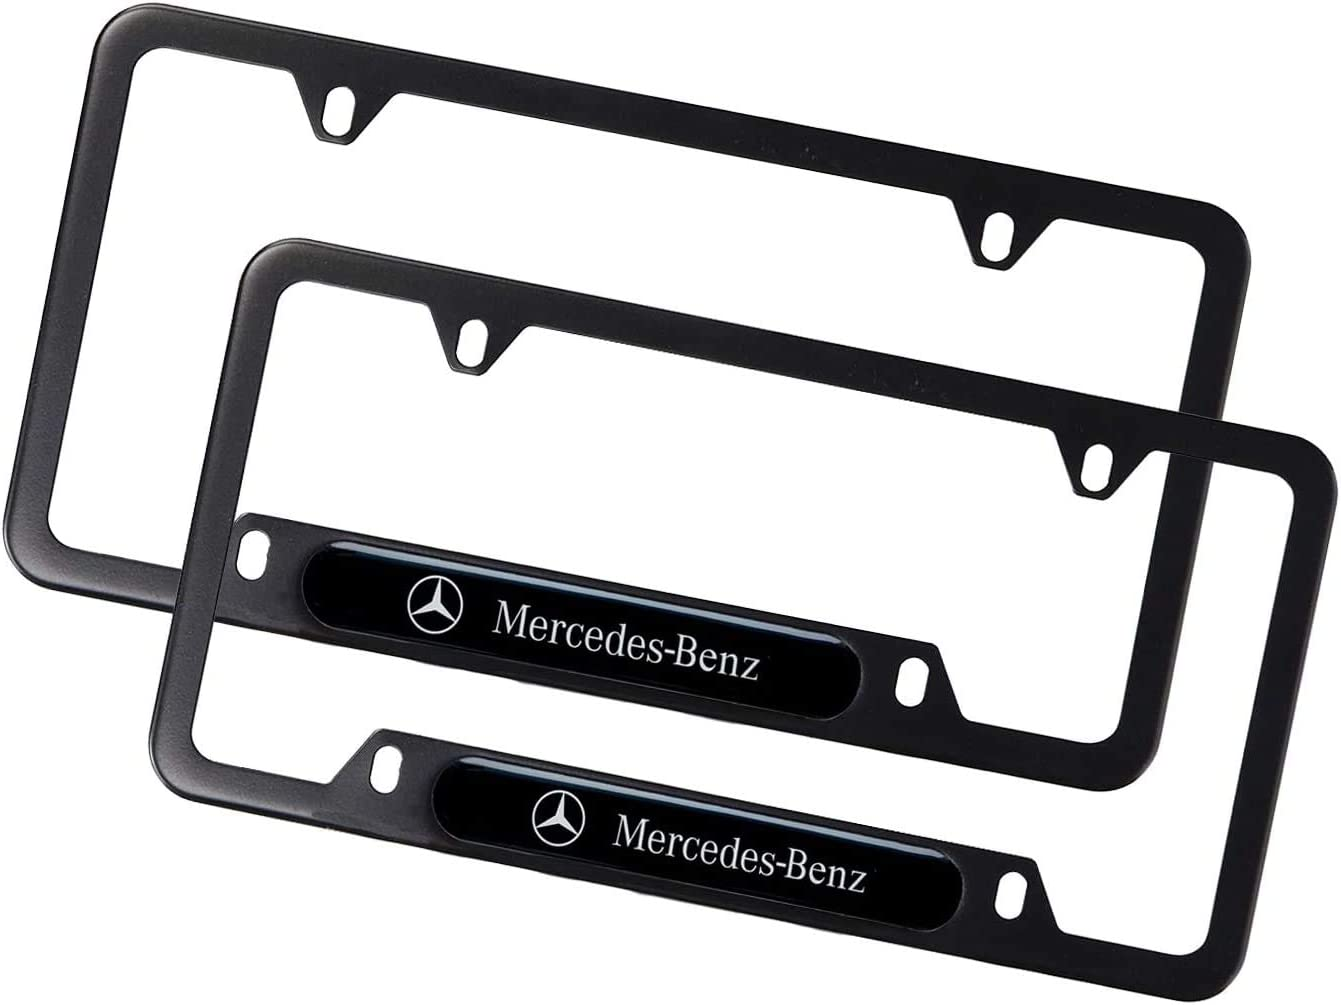 fit Benz Westion 2pcs Car Logo License Plate Frames with Screw Caps Set Stainless Steel Frame Applicable to US Standard Cars License Plate